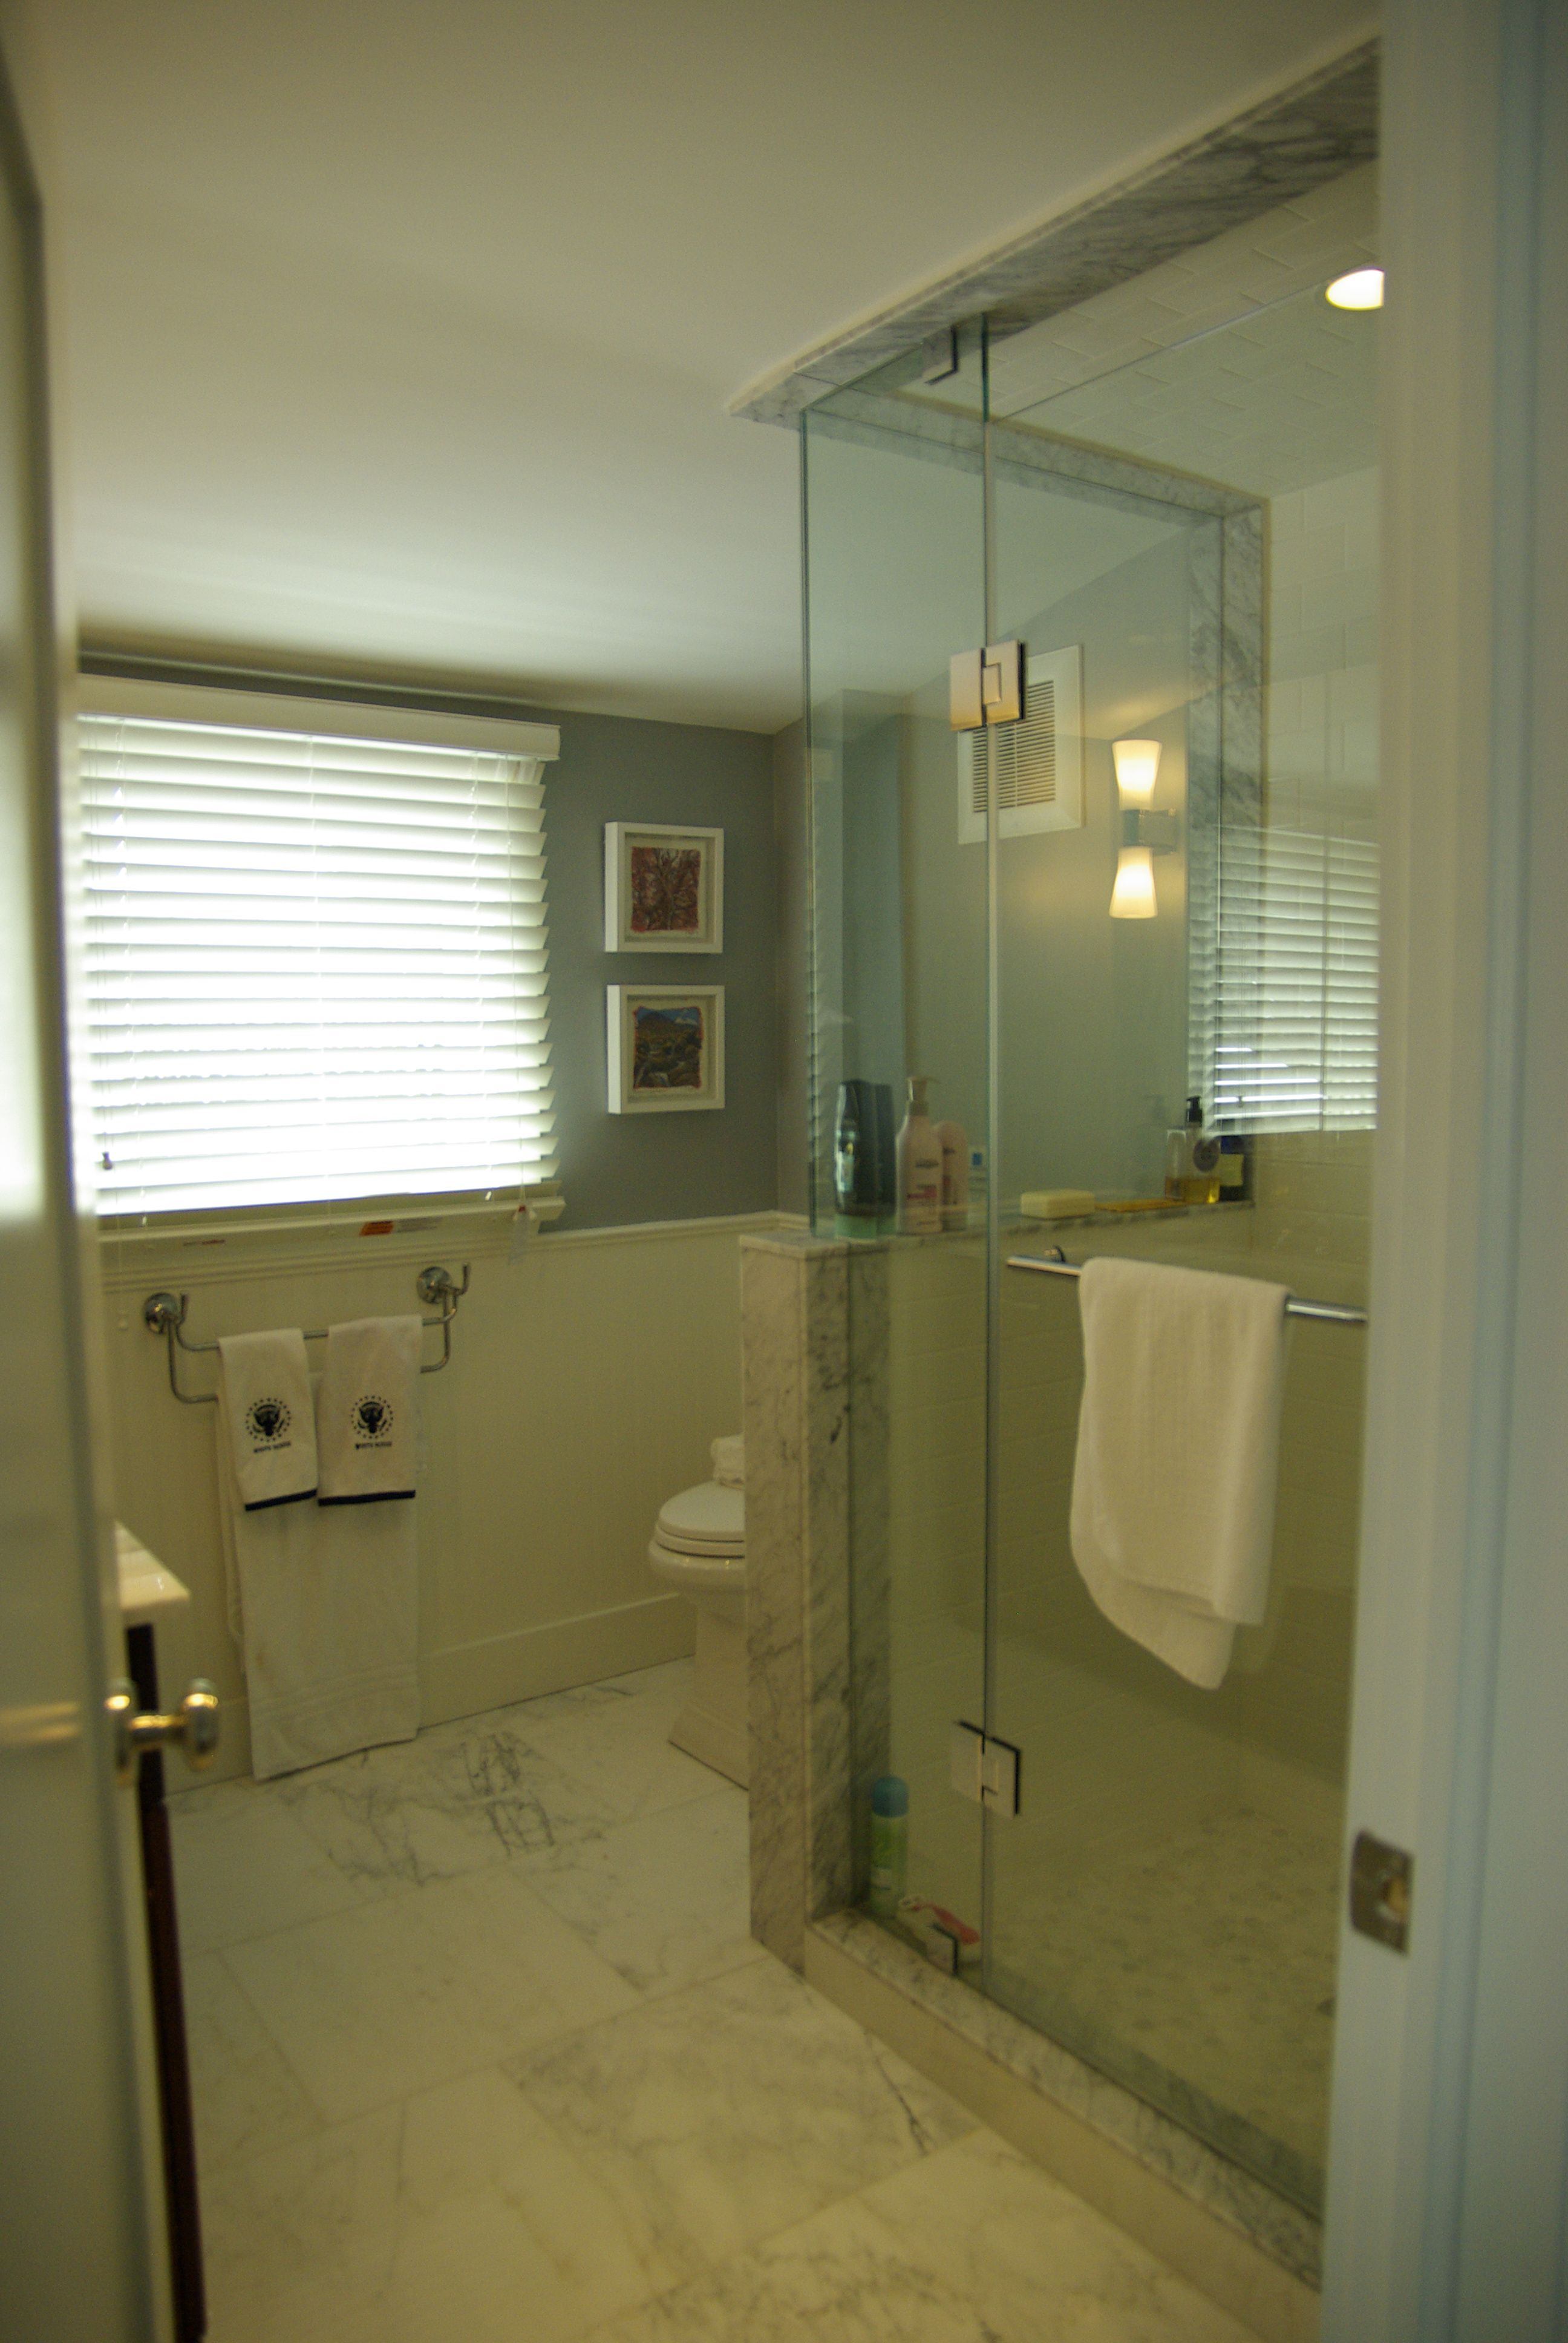 Custom Bathroom Totally Renovated By Space Converters Ltd - Commercial bathroom renovations